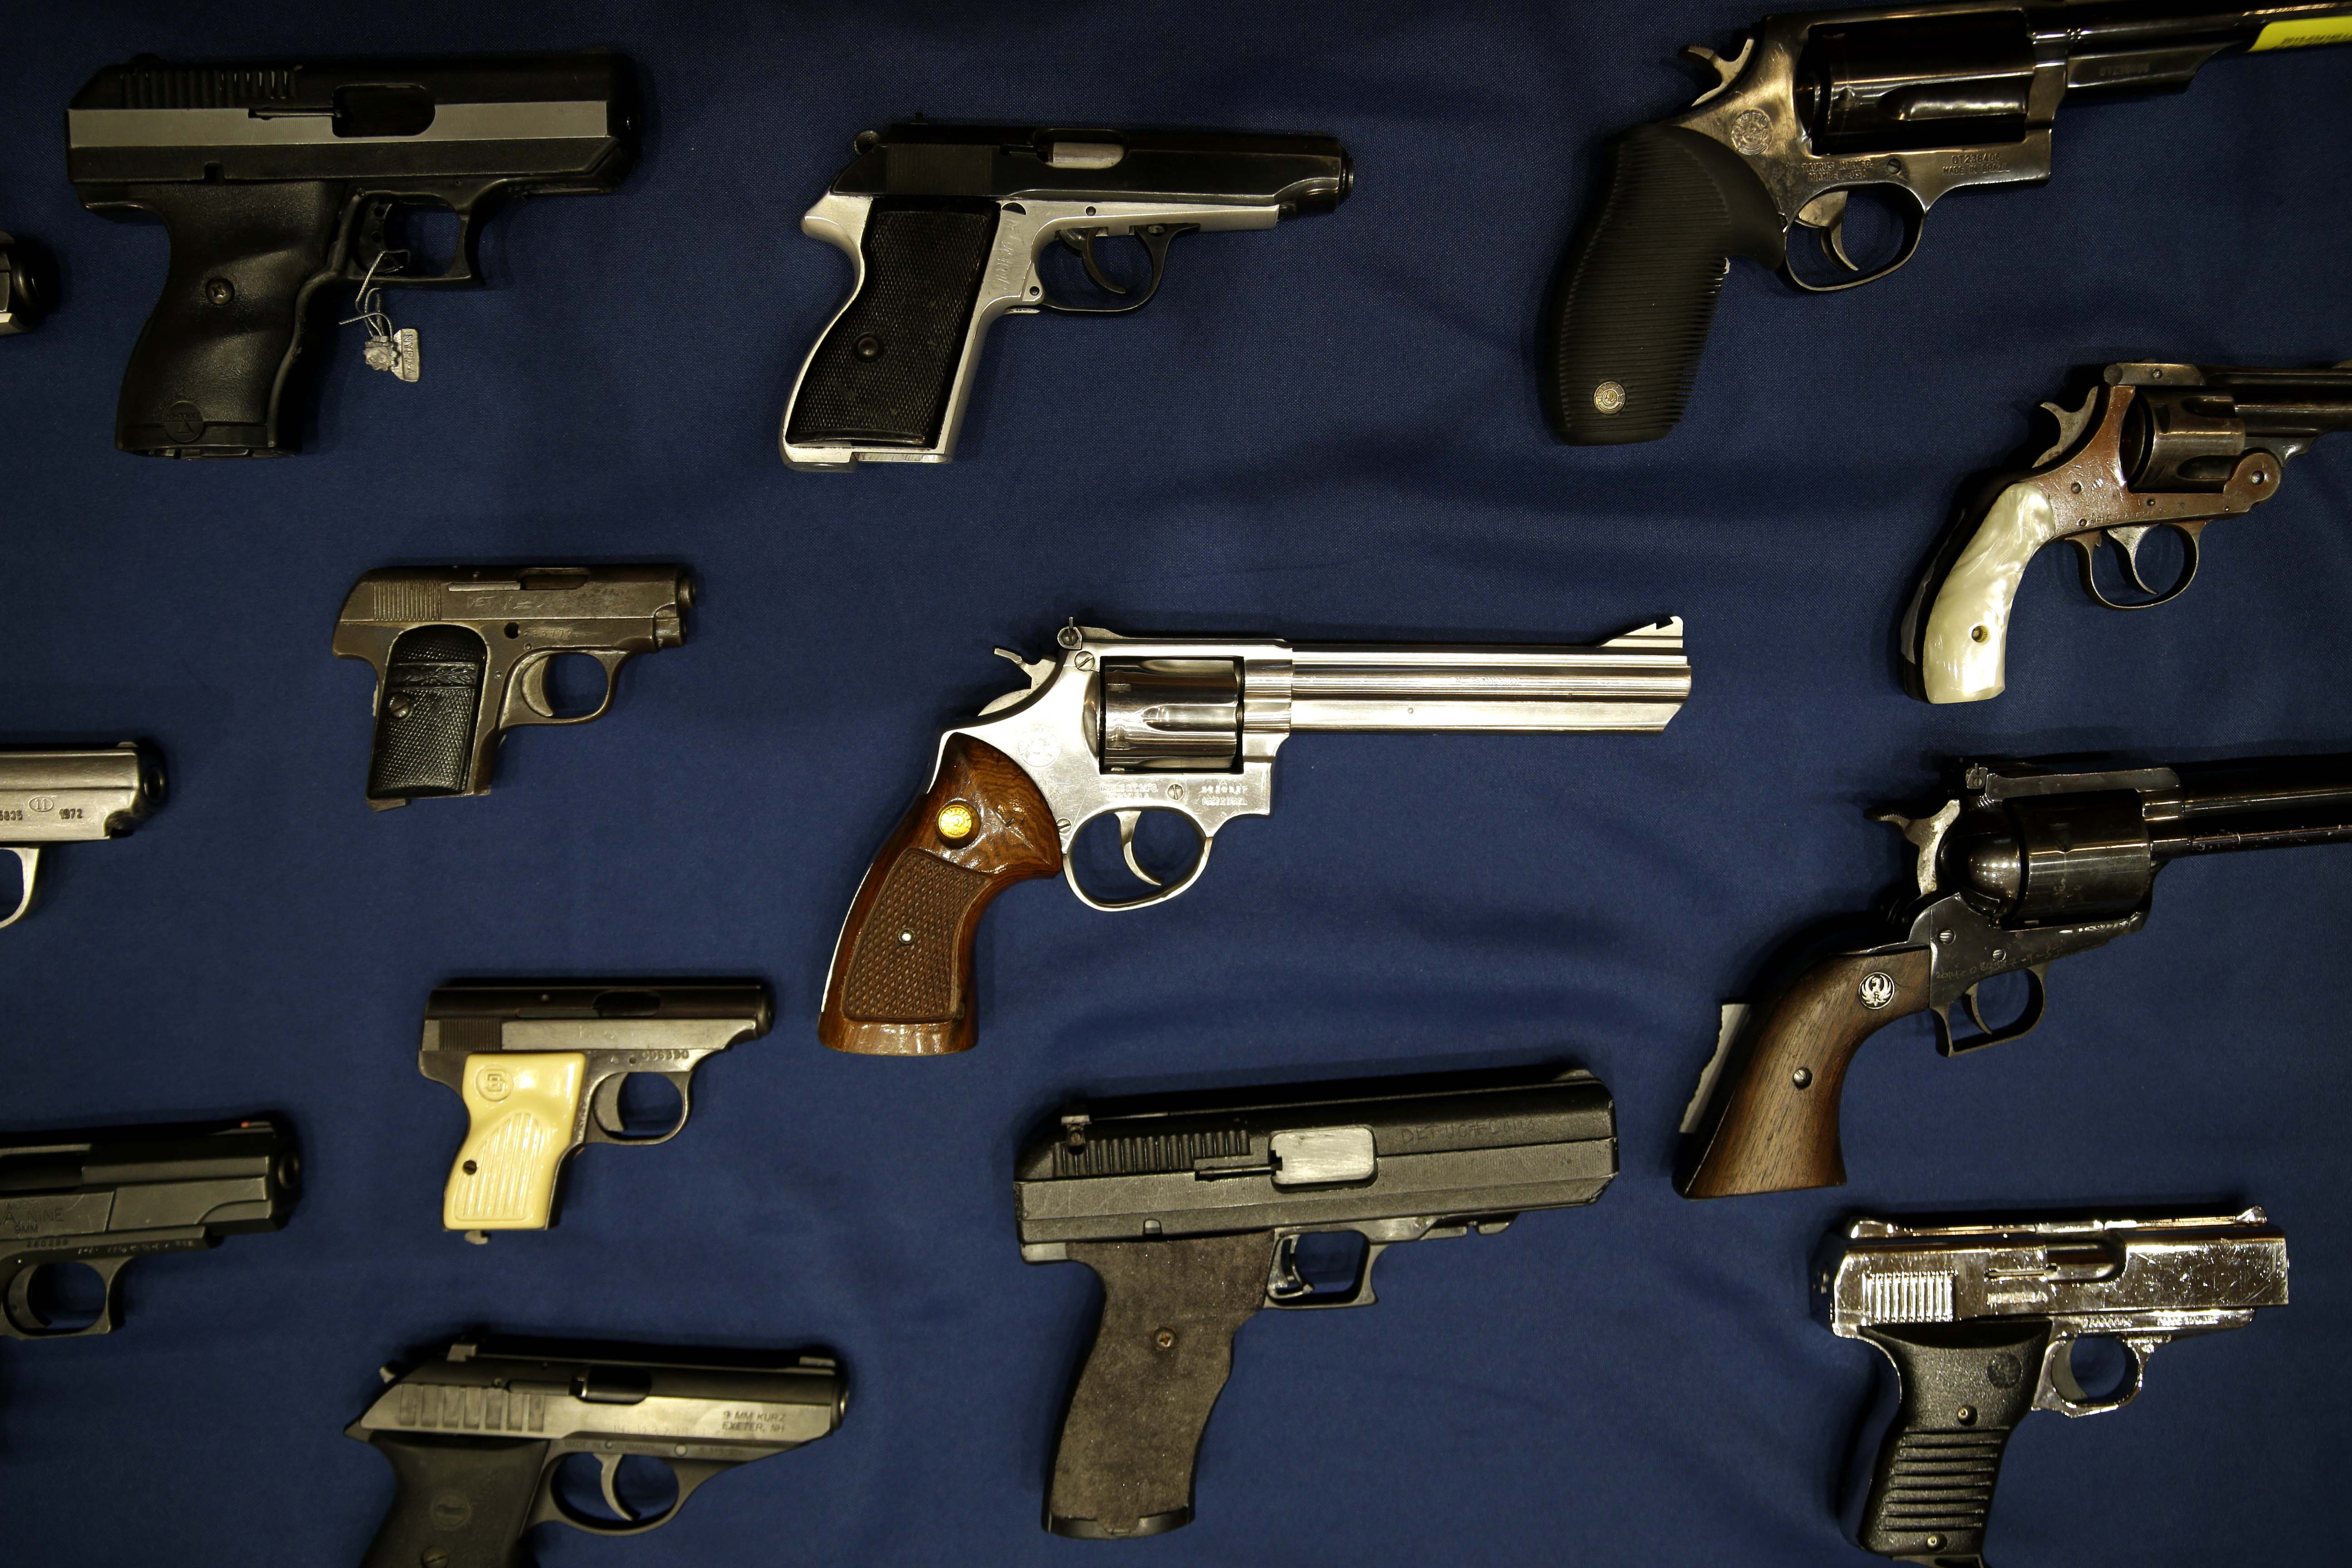 Study: California's Red Flag Law May Help Prevent Mass Shootings